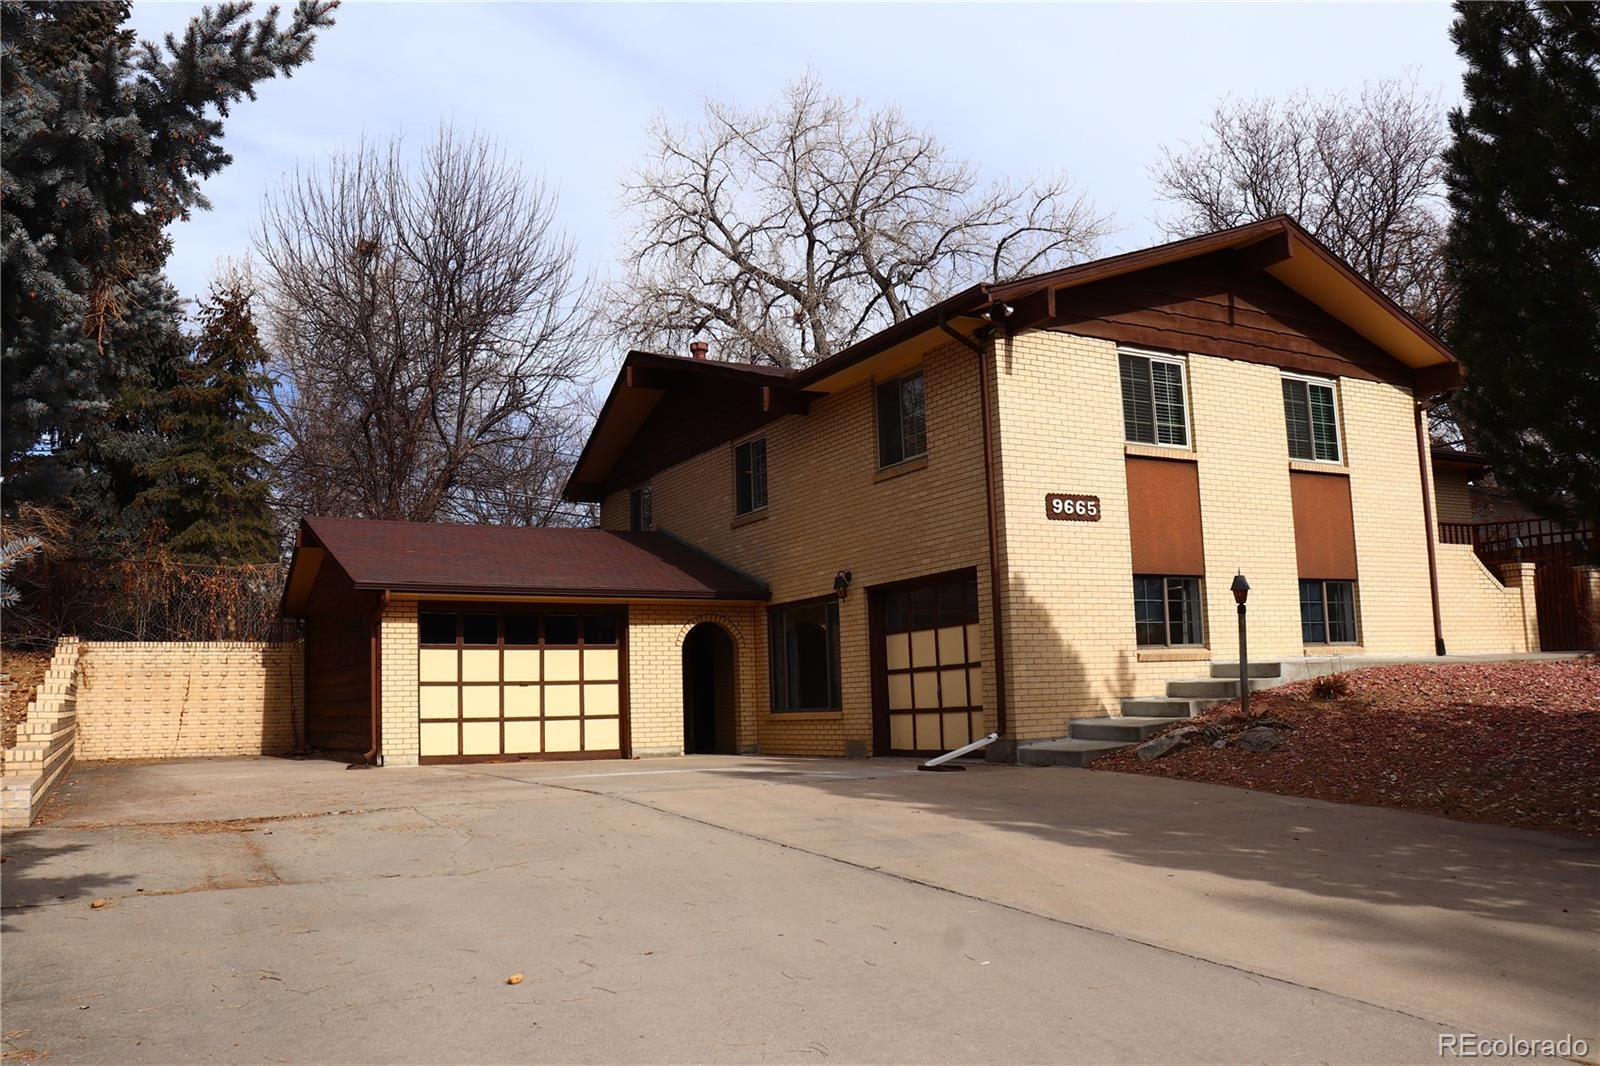 9665 W 73rd Place, Arvada, CO 80005 - #: 6268772